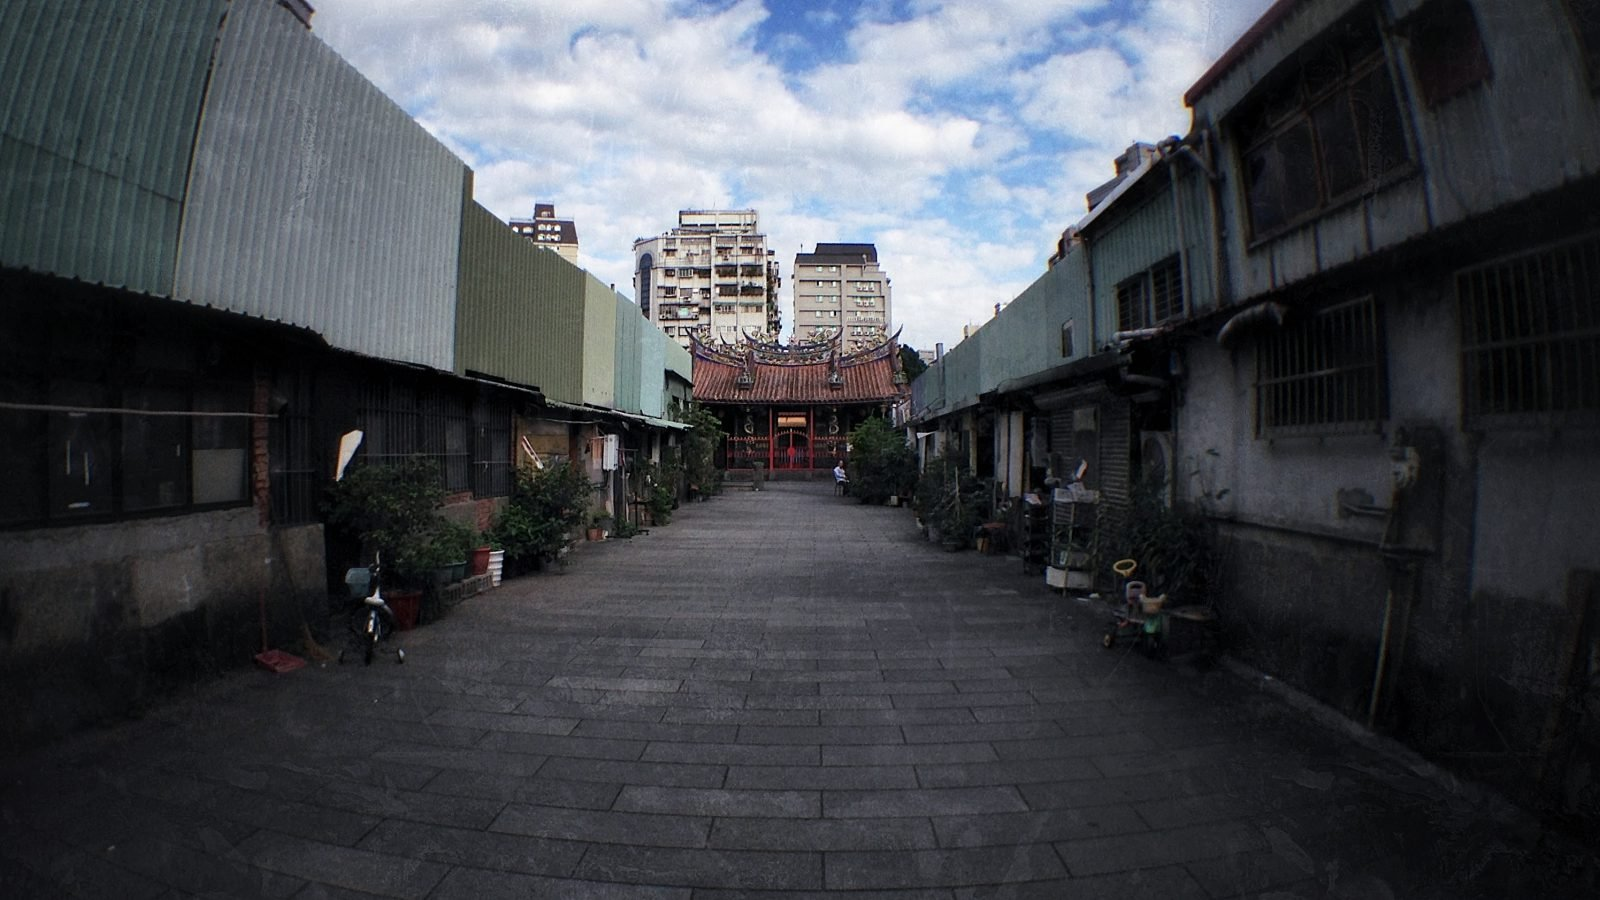 - Urban Exploration of a Condemned Temple Street in Taipei -